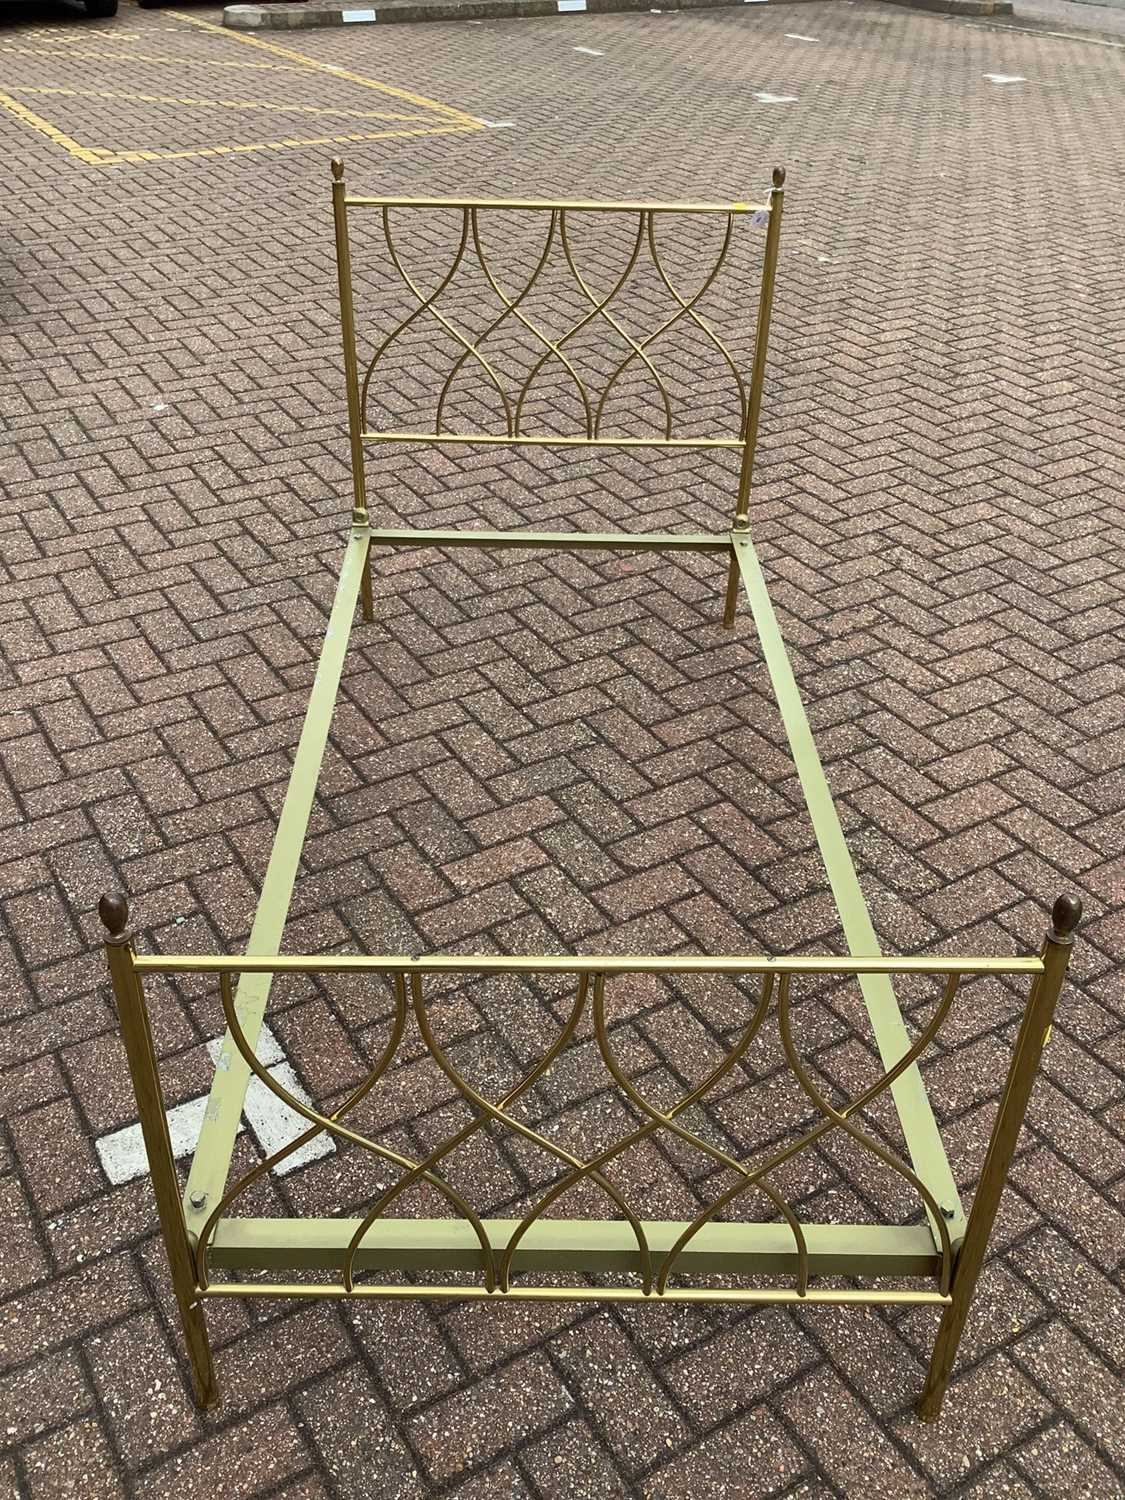 Brass single bed with side irons, 89cm wide - Image 2 of 11